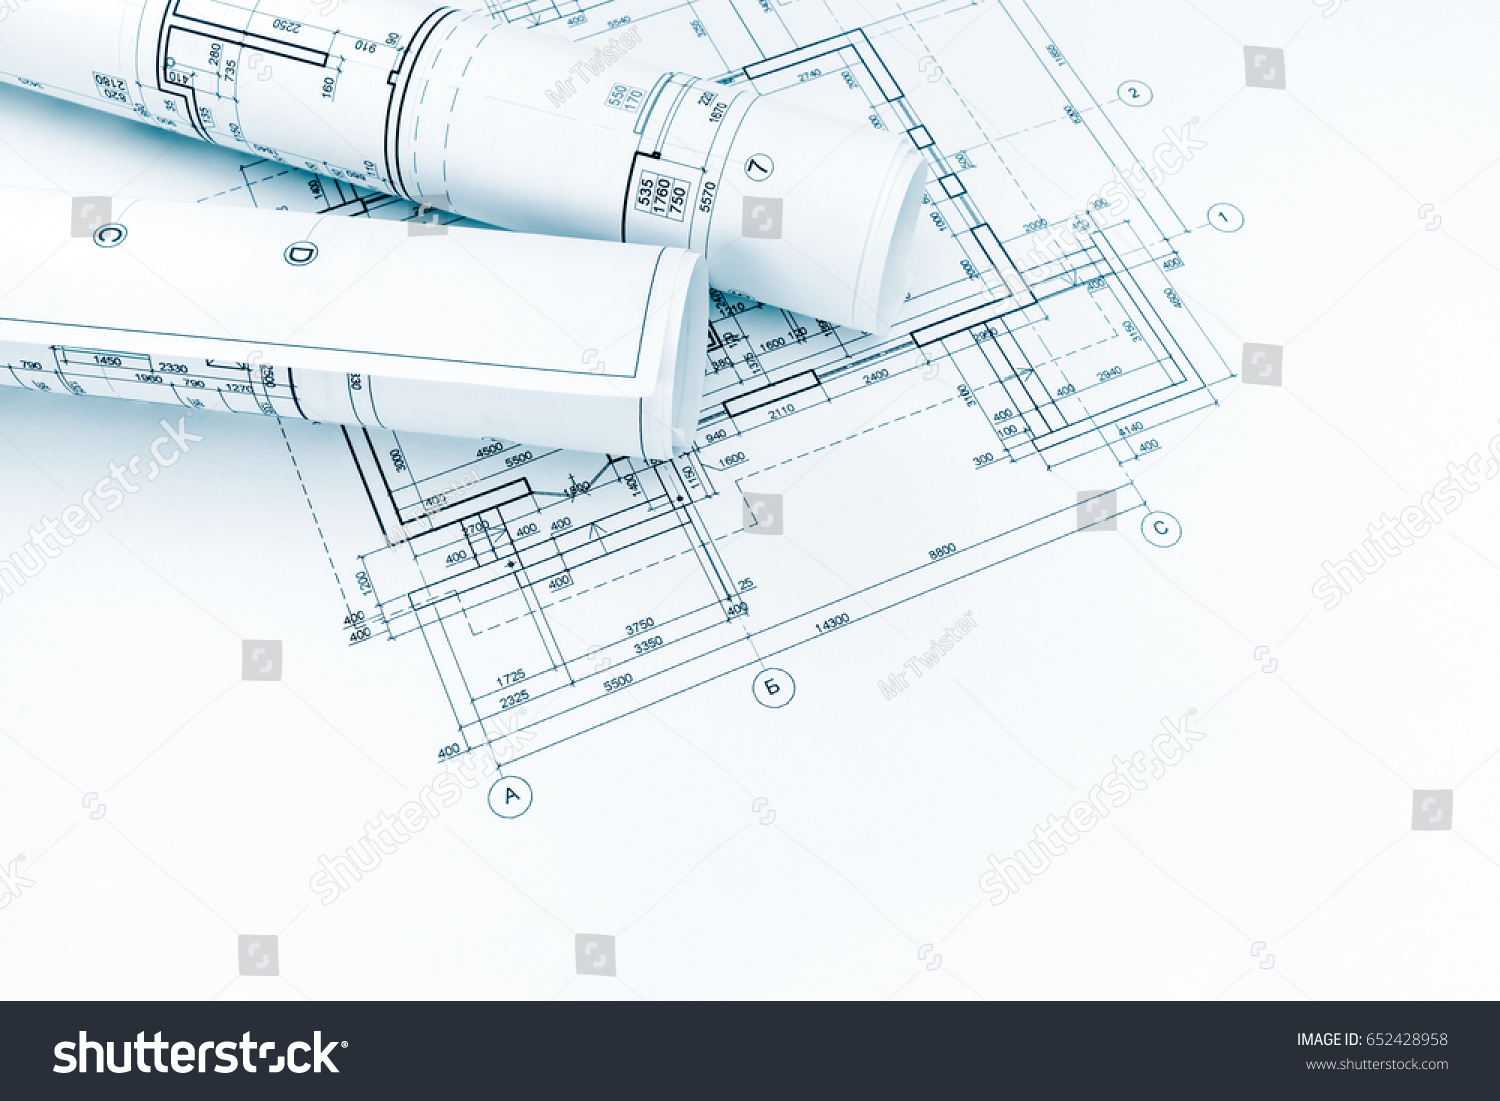 architectural engineering blueprints. Architect Or Engineer Graphical Blueprints And Plans For House Renovation Architectural Engineering T